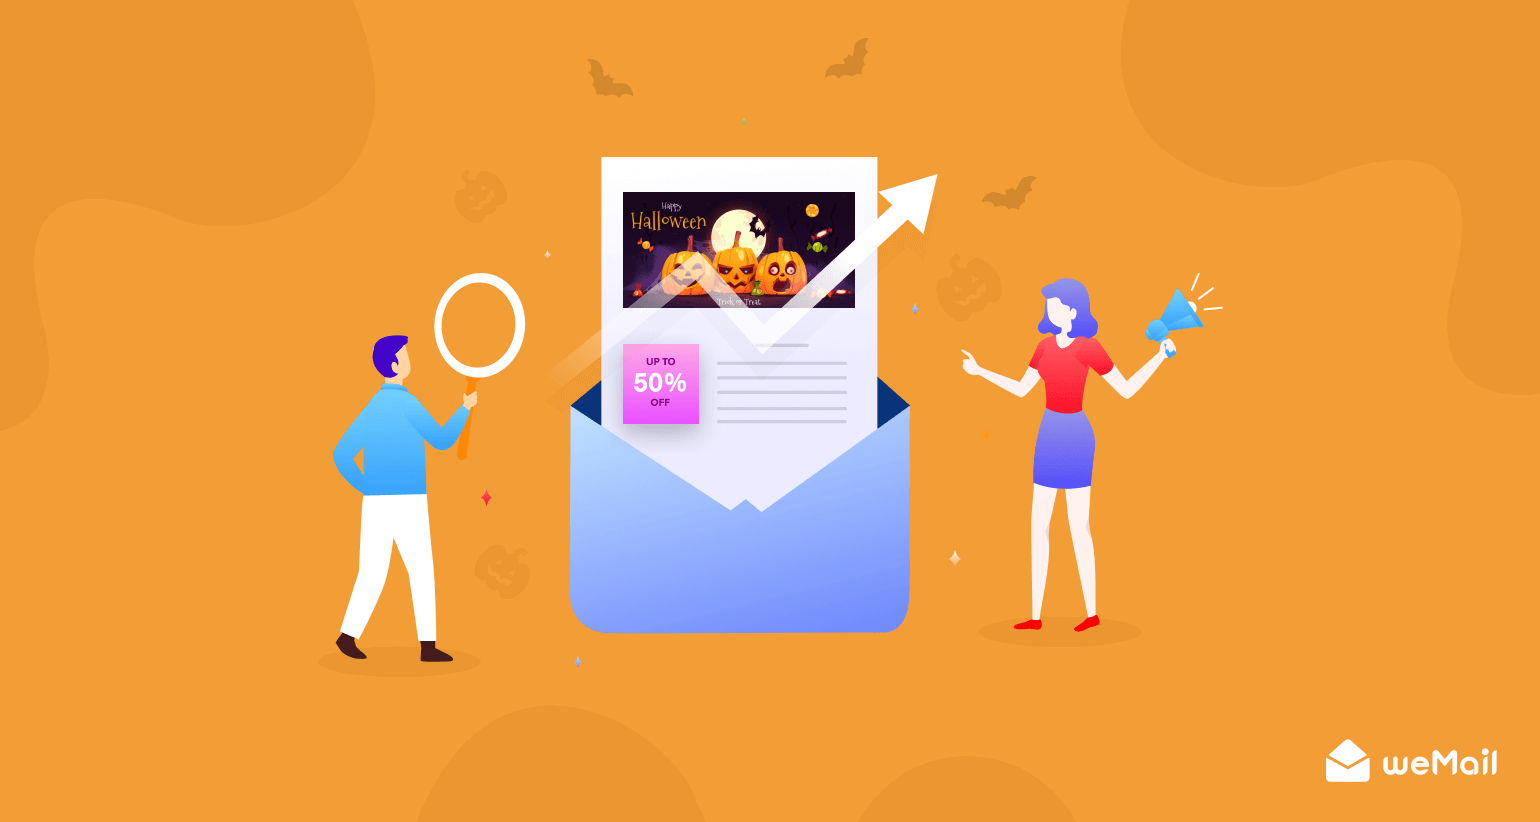 How to boost Sales from halloween email Marketing